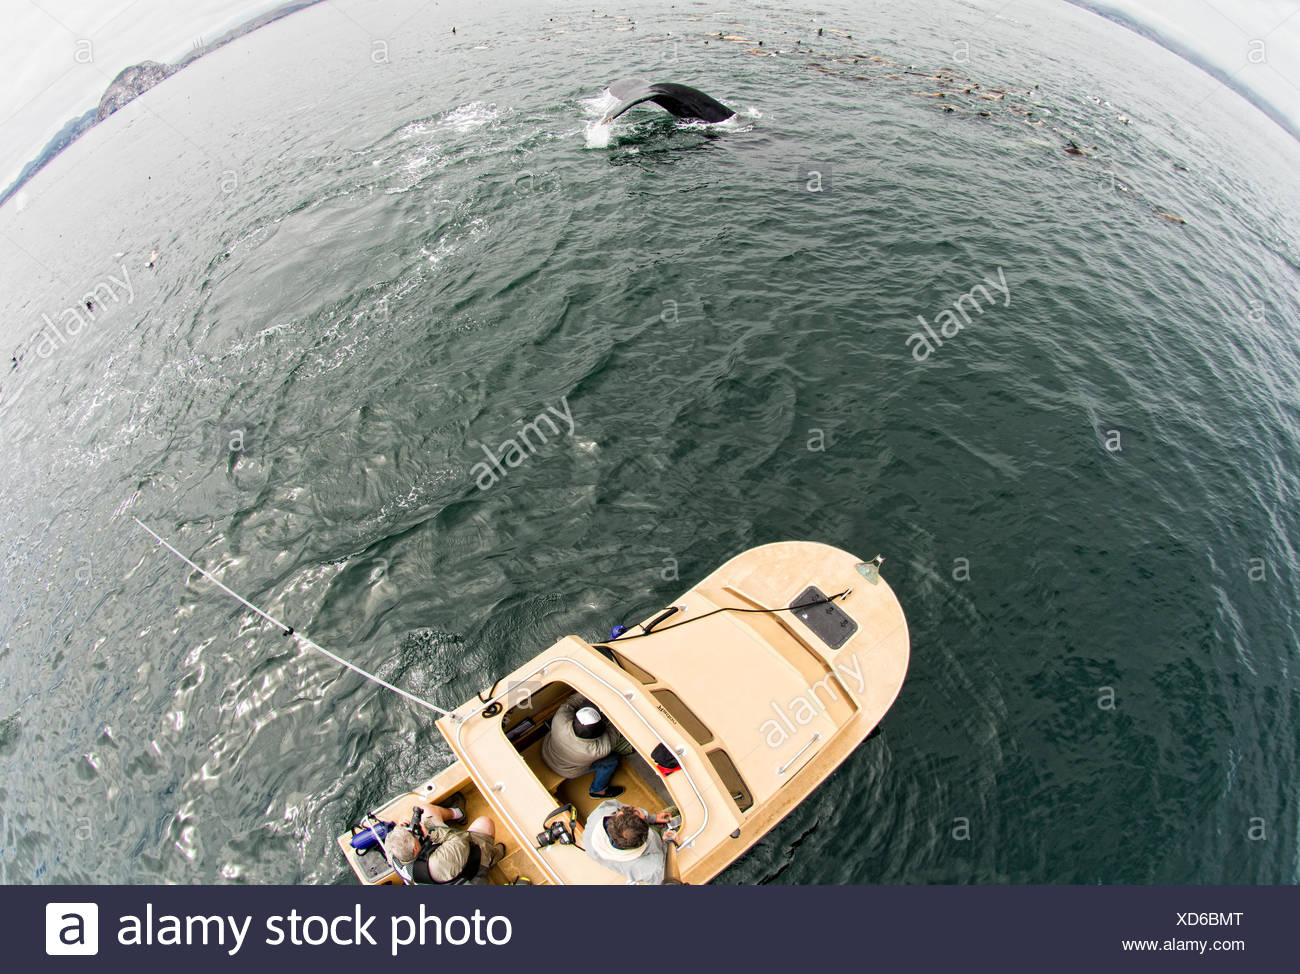 Humpback whales and sea lions feed together on anchovies. - Stock Image